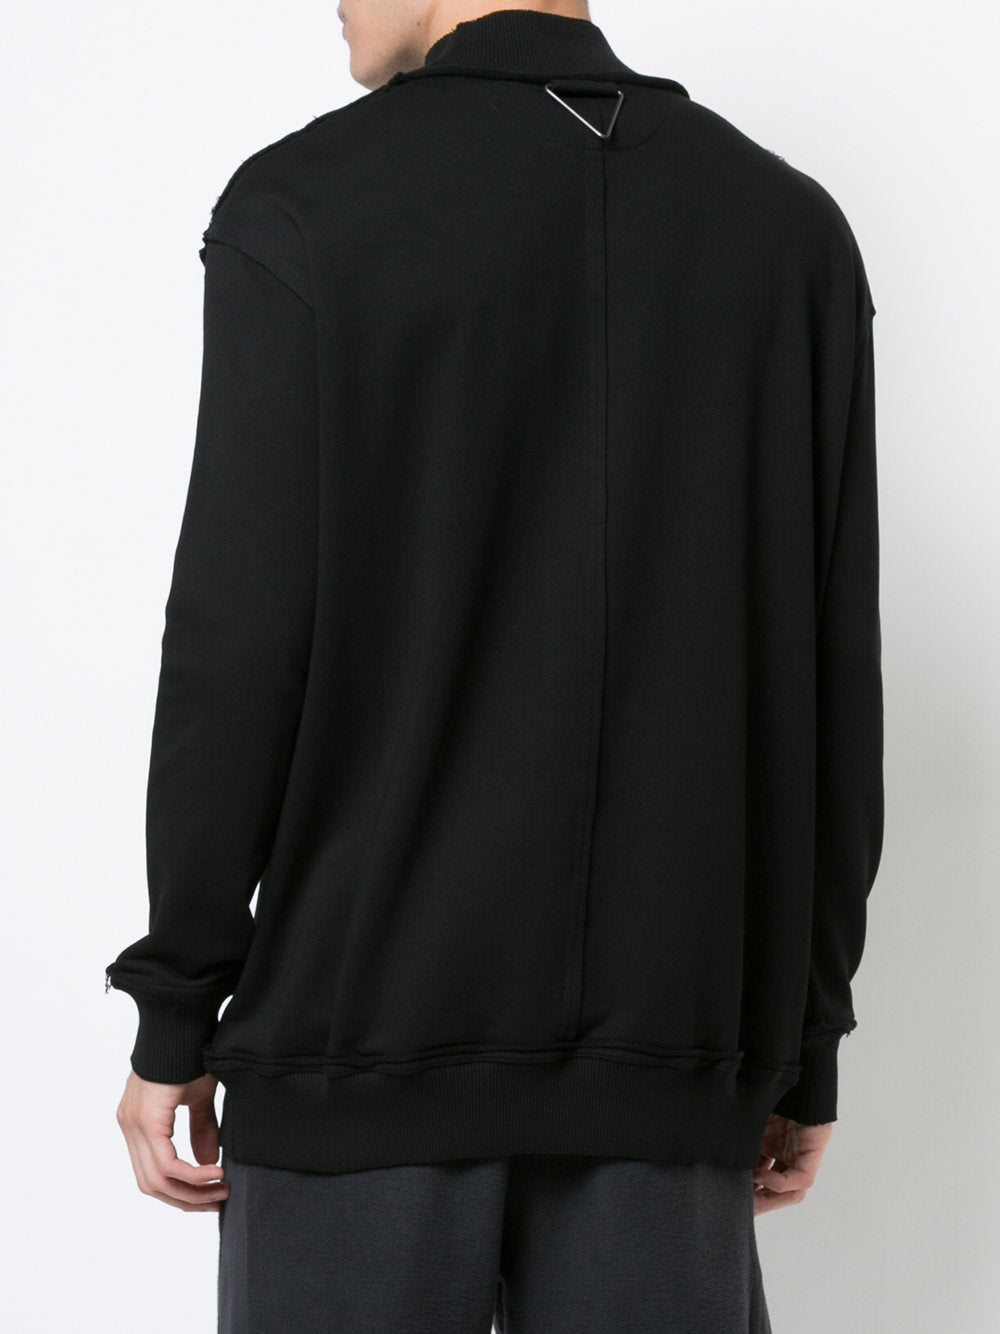 Mock Neck Sweatshirt | BF1M0094 J1511 WIRE